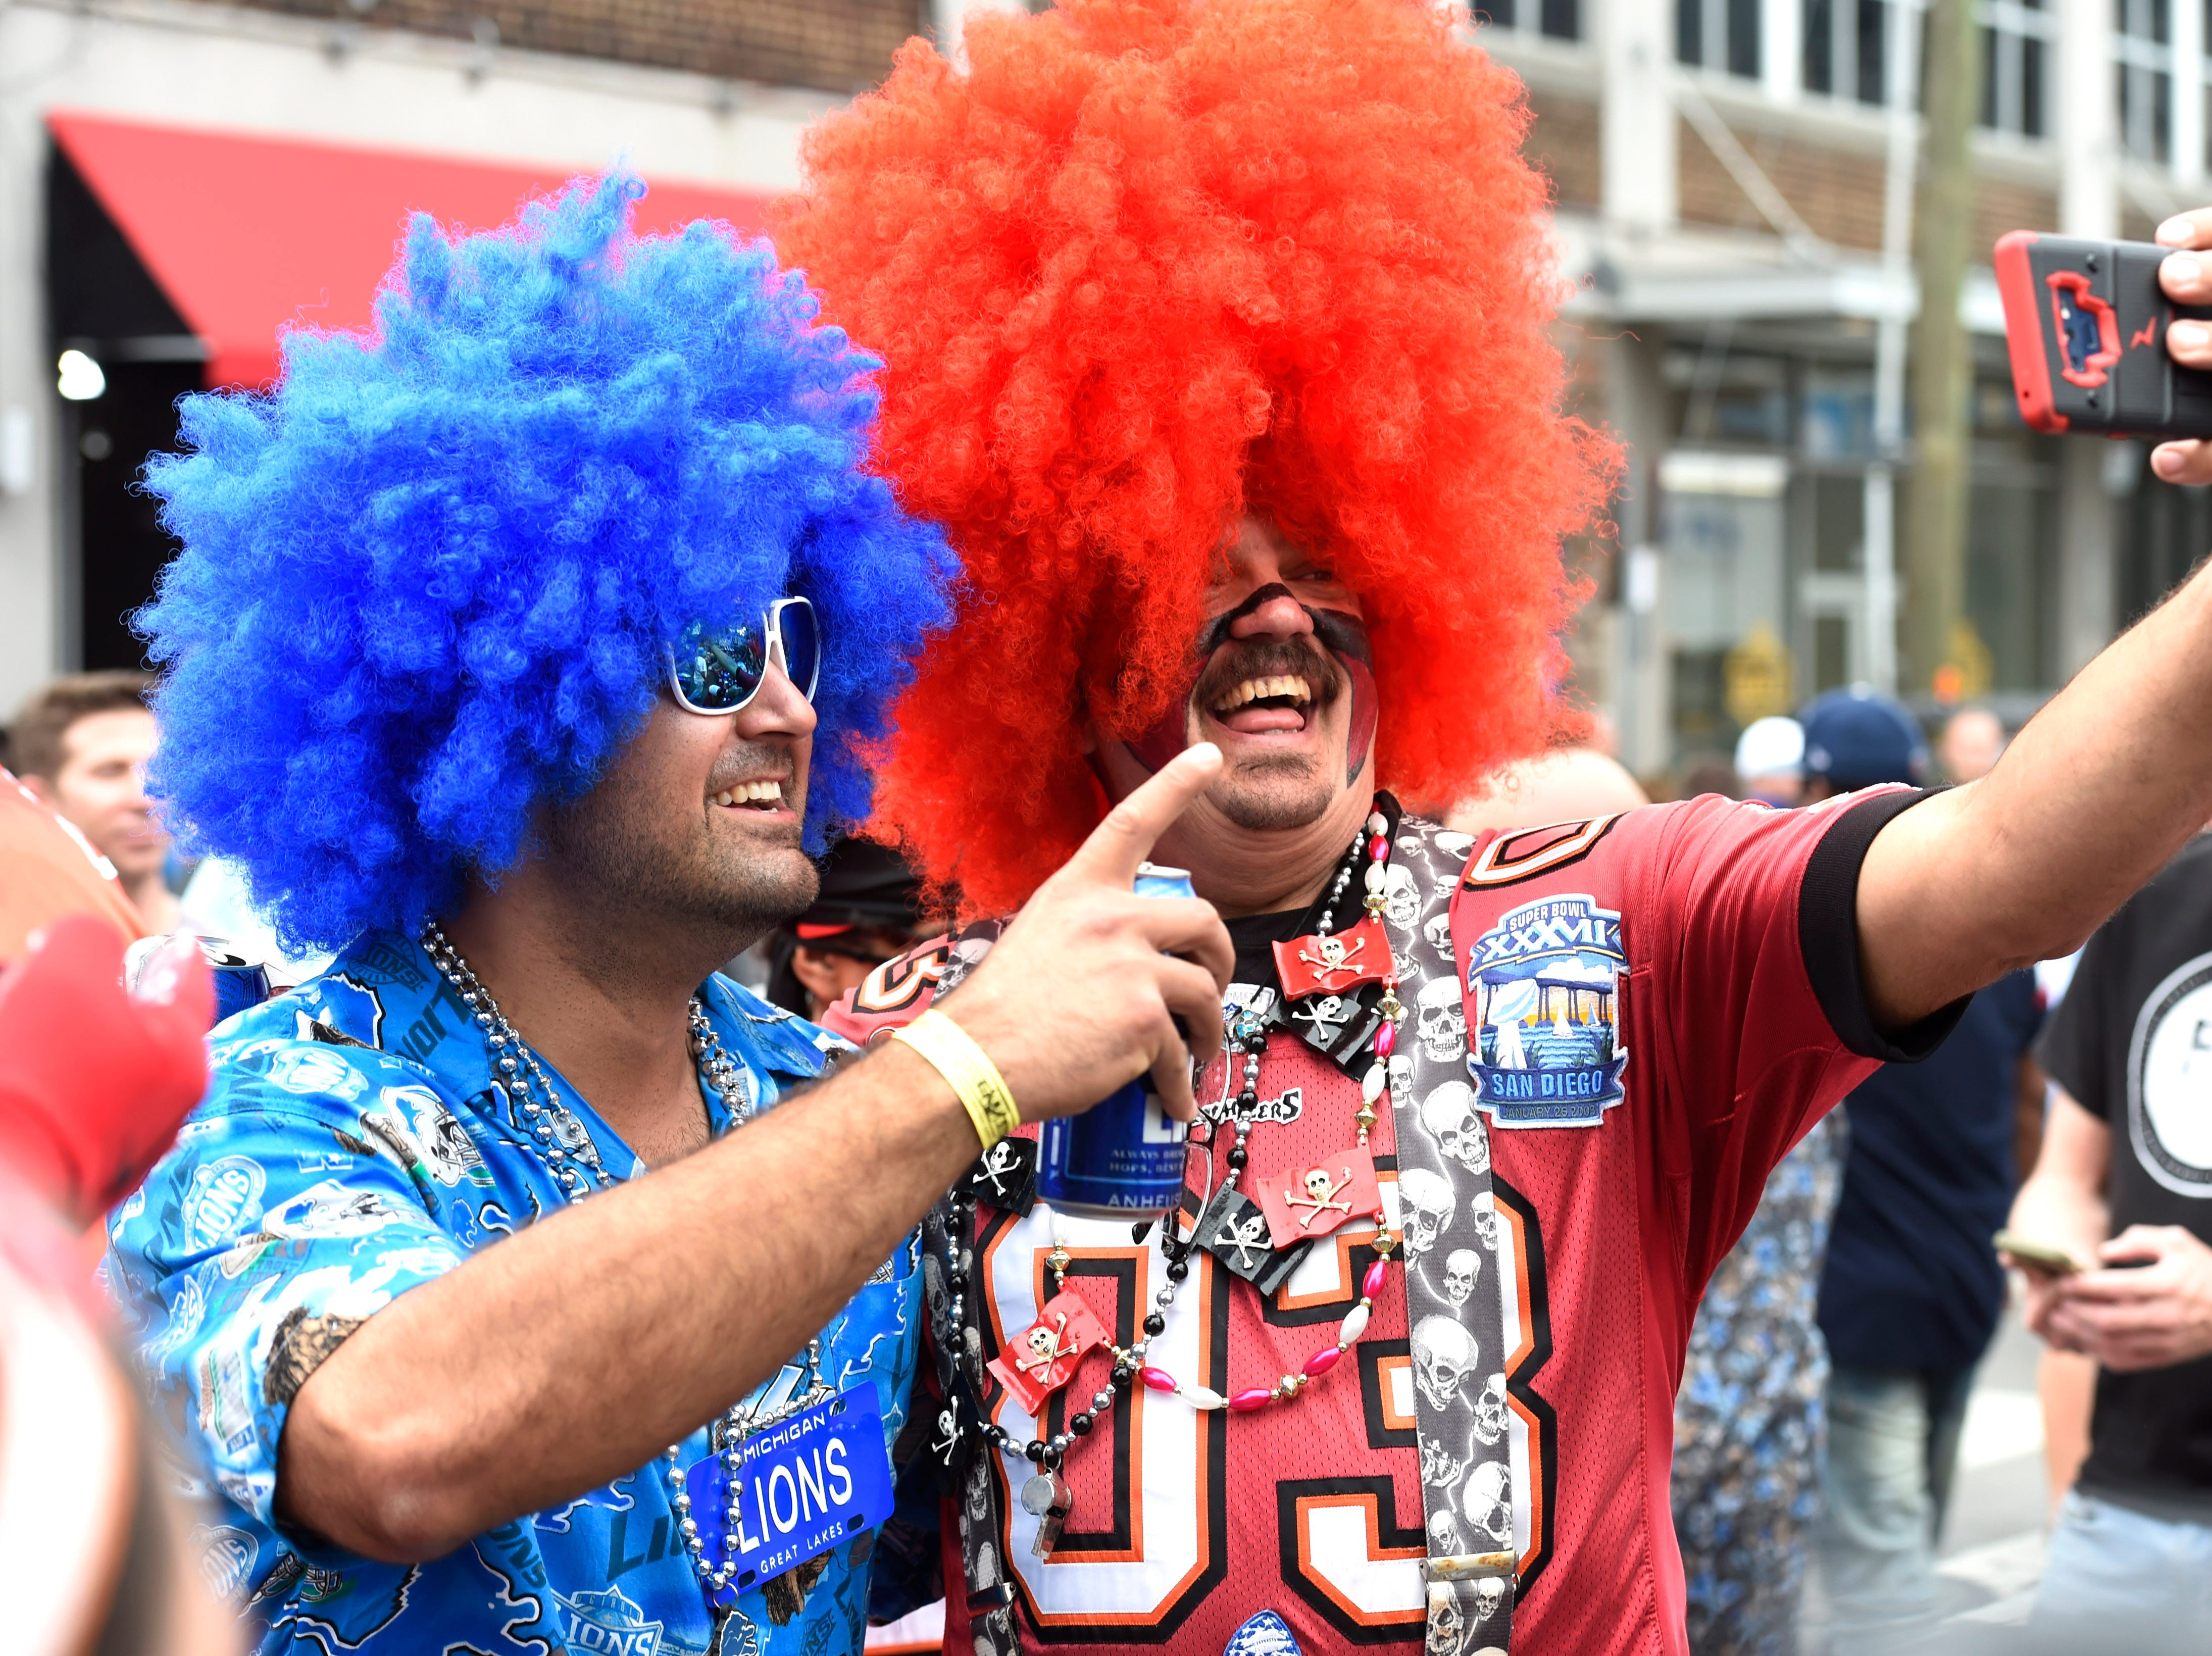 Detroit and Tampa Bay fans take a selfie before the start of first round of the NFL Draft Thursday, April 25, 2019 in Nashville, Tenn.